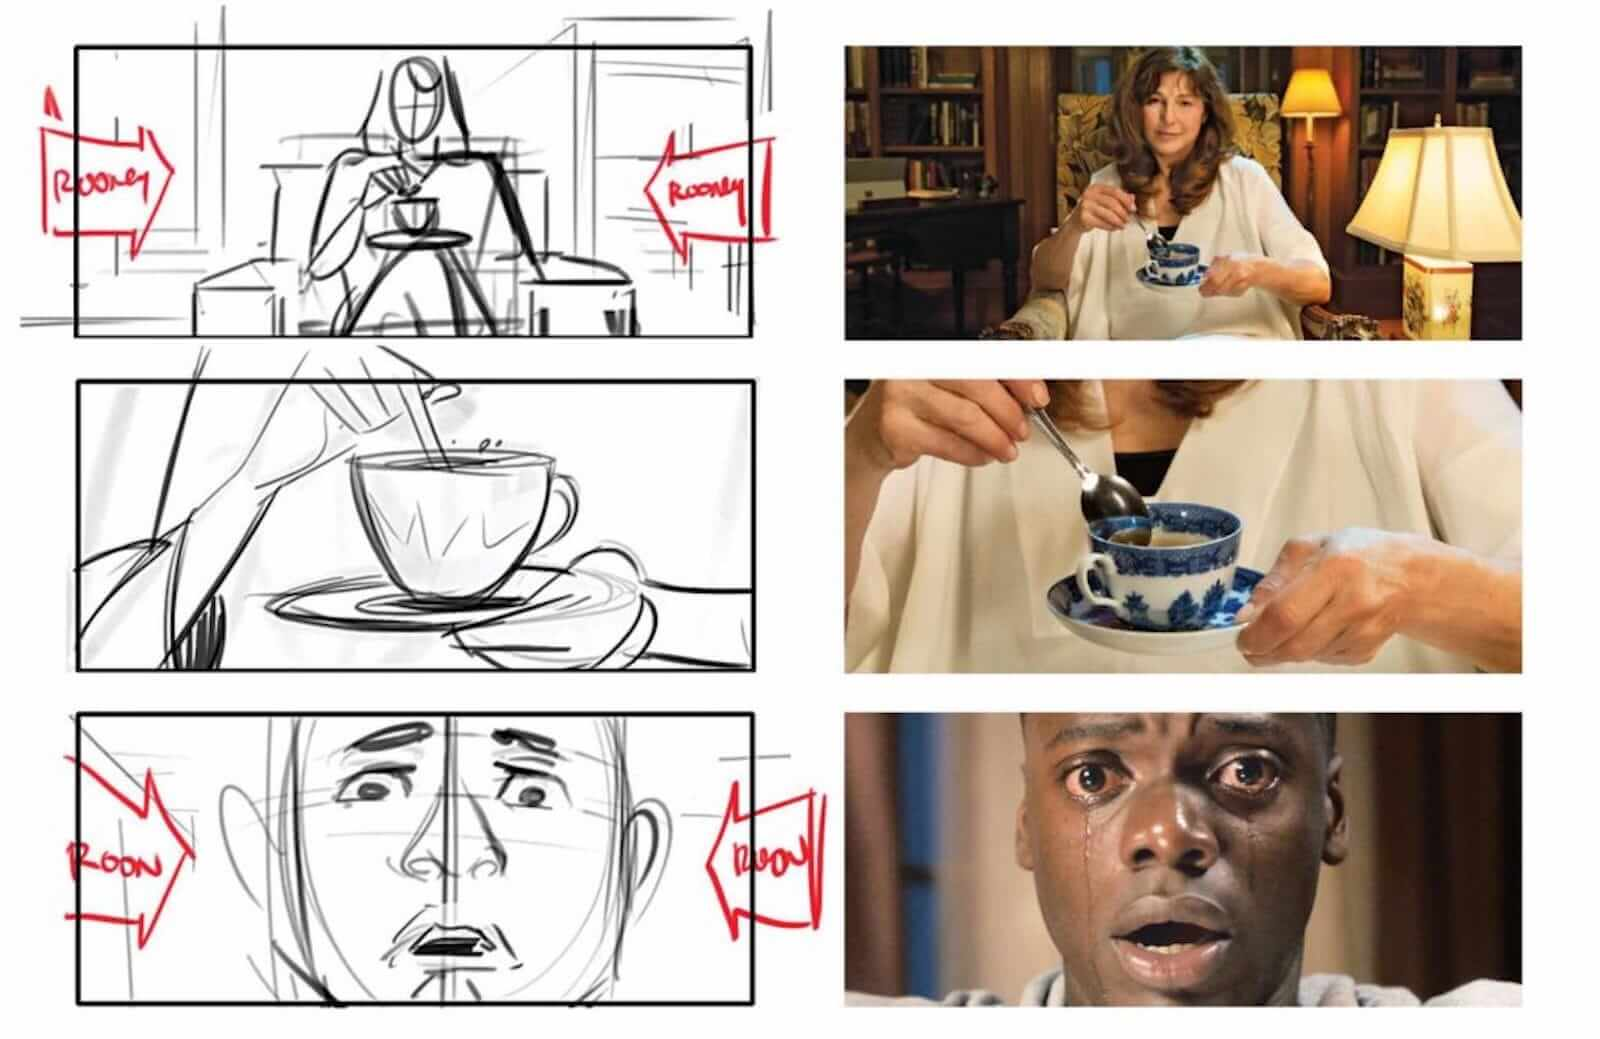 How to Master A StoryBoard like Jordan Peele - Get Out Storyboard - StudioBinder Storyboard Software